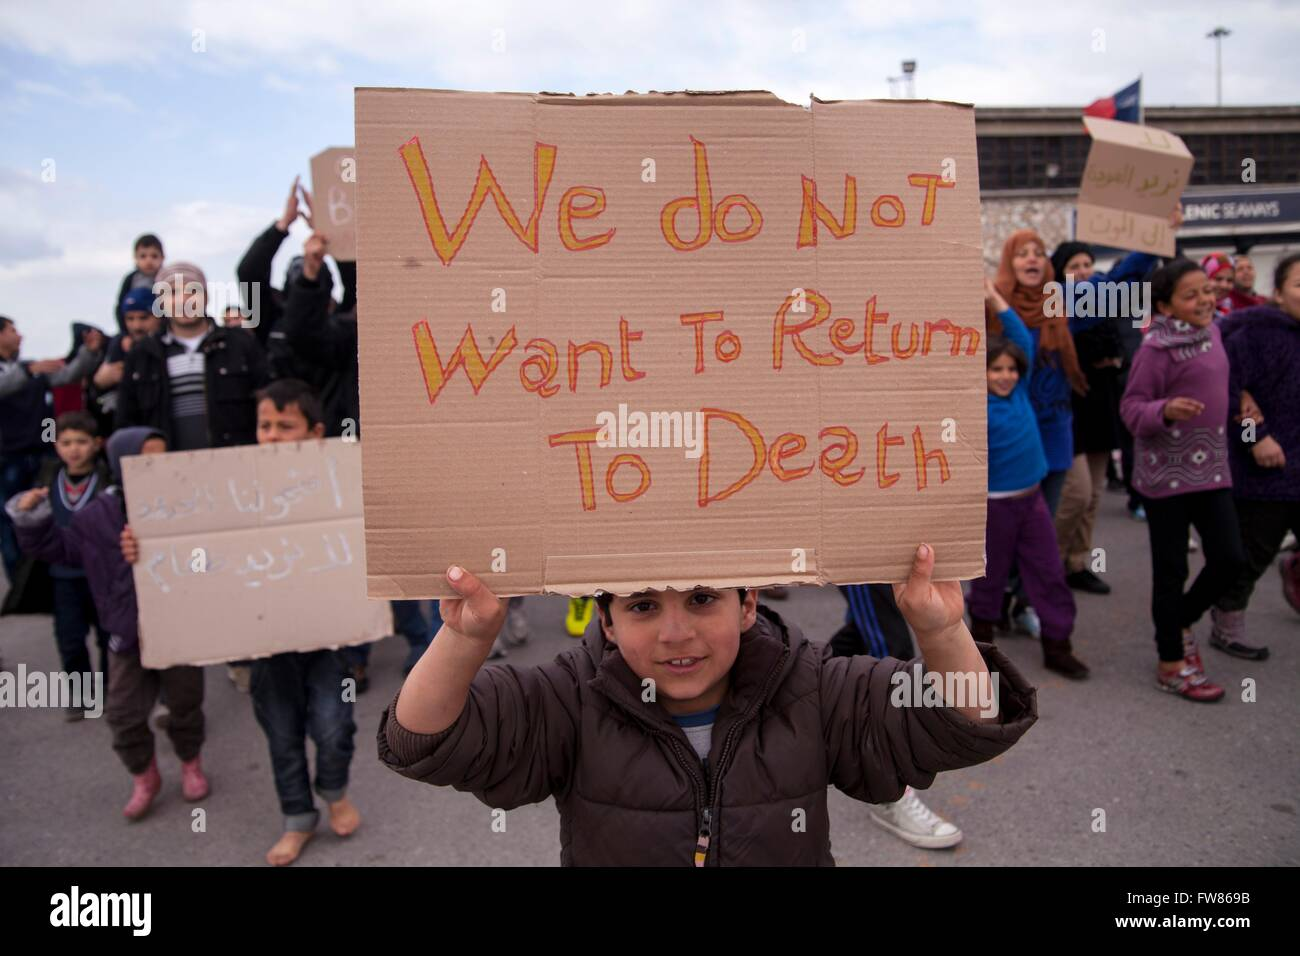 Syrian refugees at habour of Piraeus. Sing 'We don_t want to return to death'. Refugees demand opening of - Stock Image